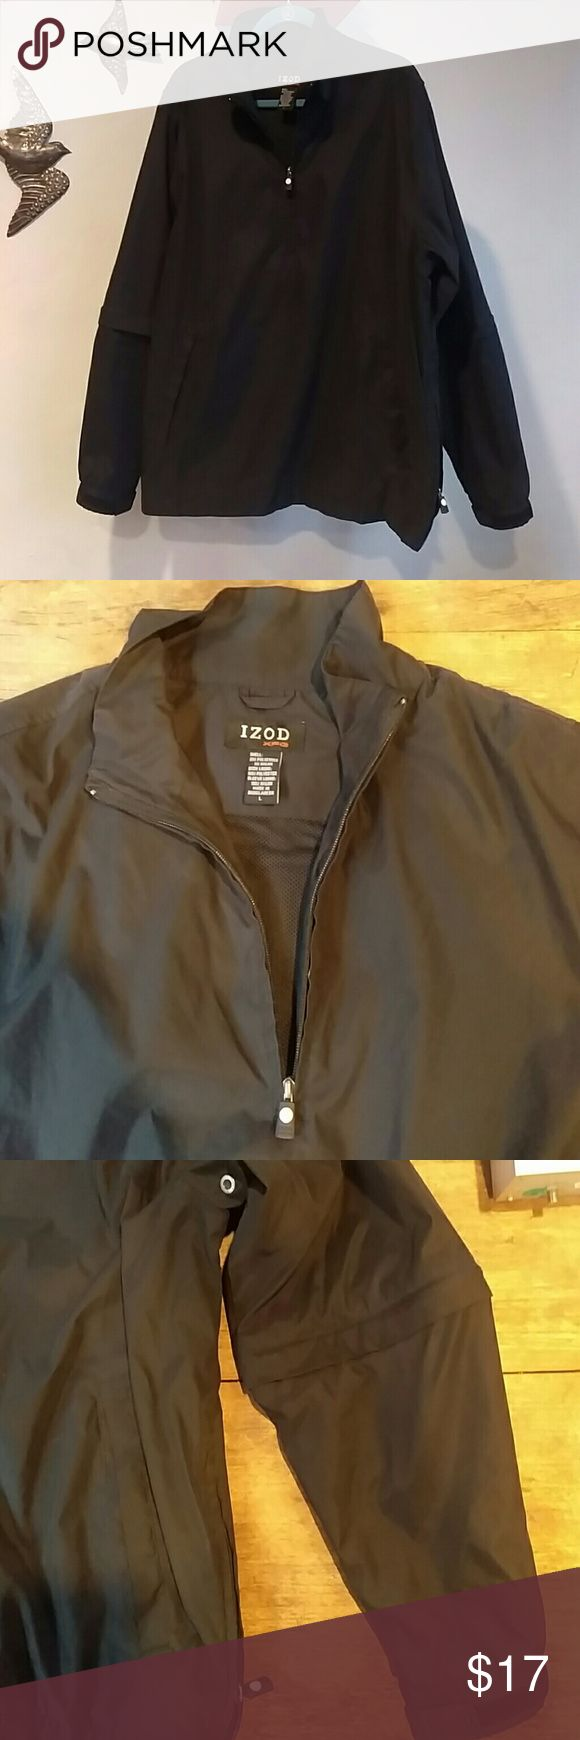 IZod XFG Walter Hagen Golf Jacket Zip off sleeves. Velcro at cuffs . Zip vent at side. Windbreaker and weather proof.  Very functional when out on course.  Only worn a few times. No real signs of wear.  You will conquer the course with this on! Izod Jackets & Coats Performance Jackets